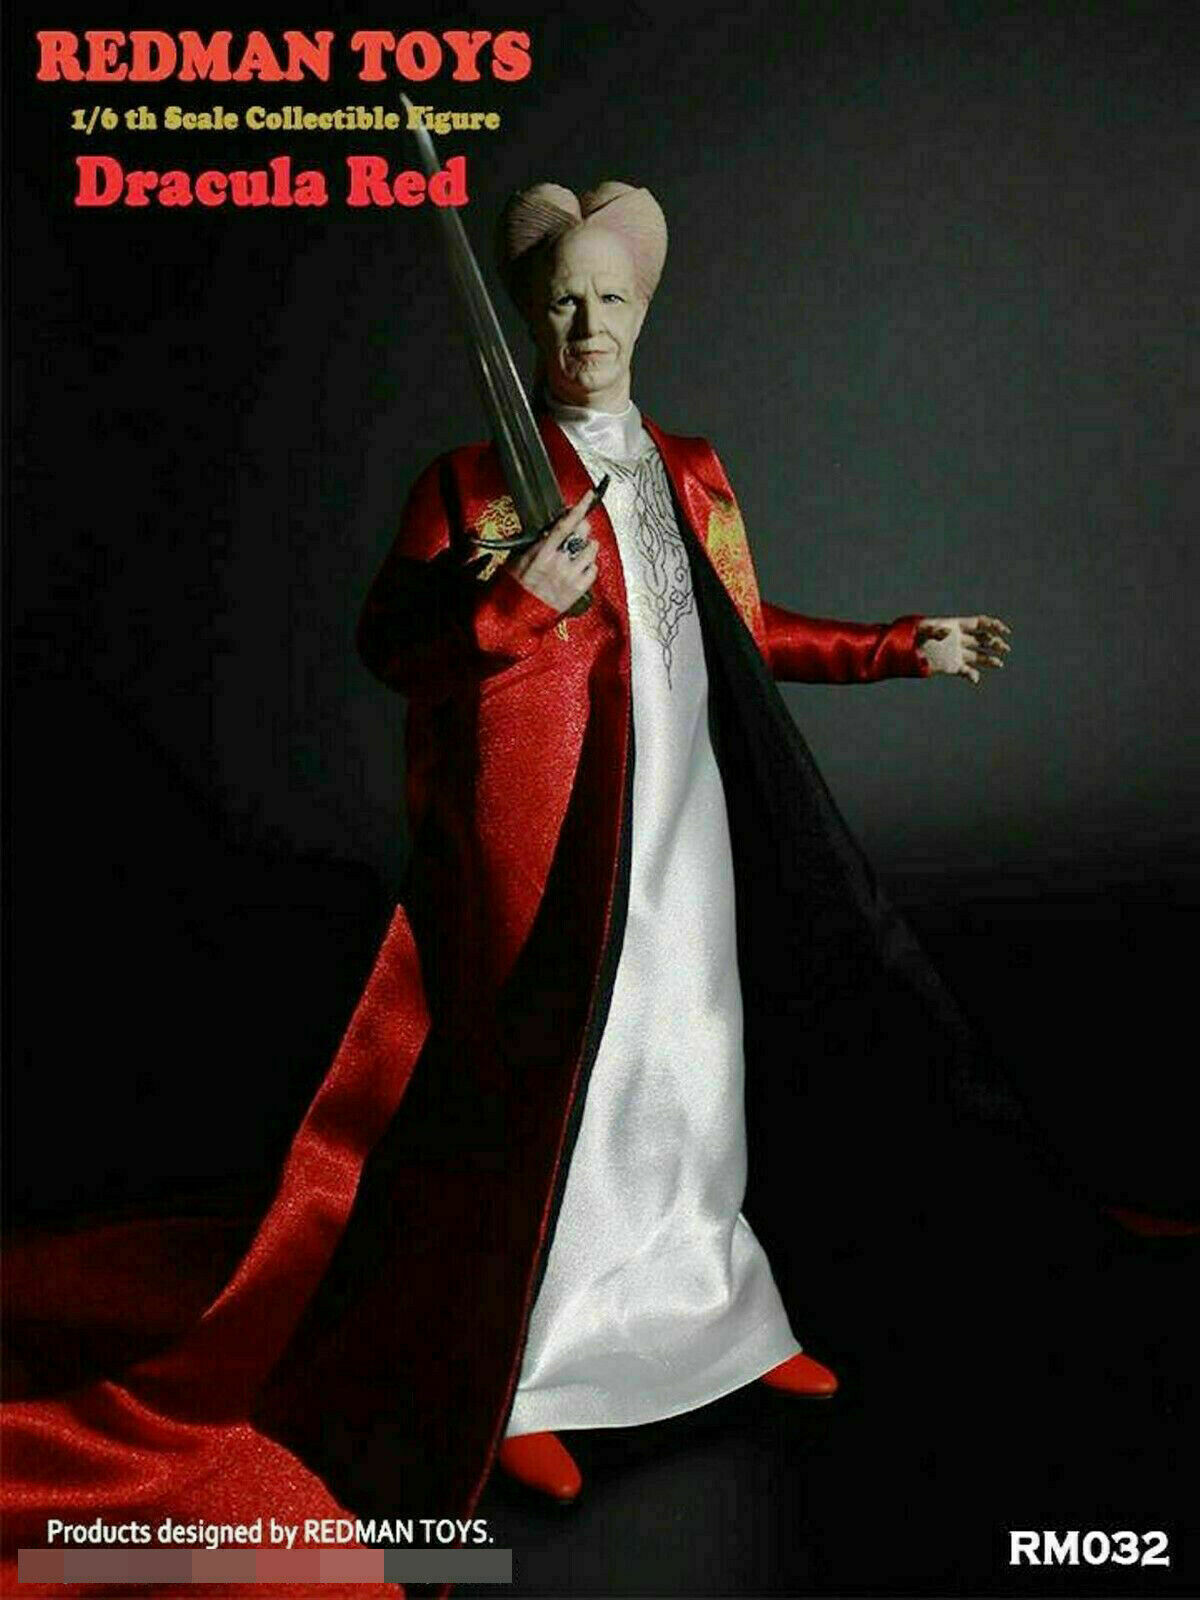 Redman Toys 1 6 Dracula Gary Oldman RM032 Figure Collection Model Gift